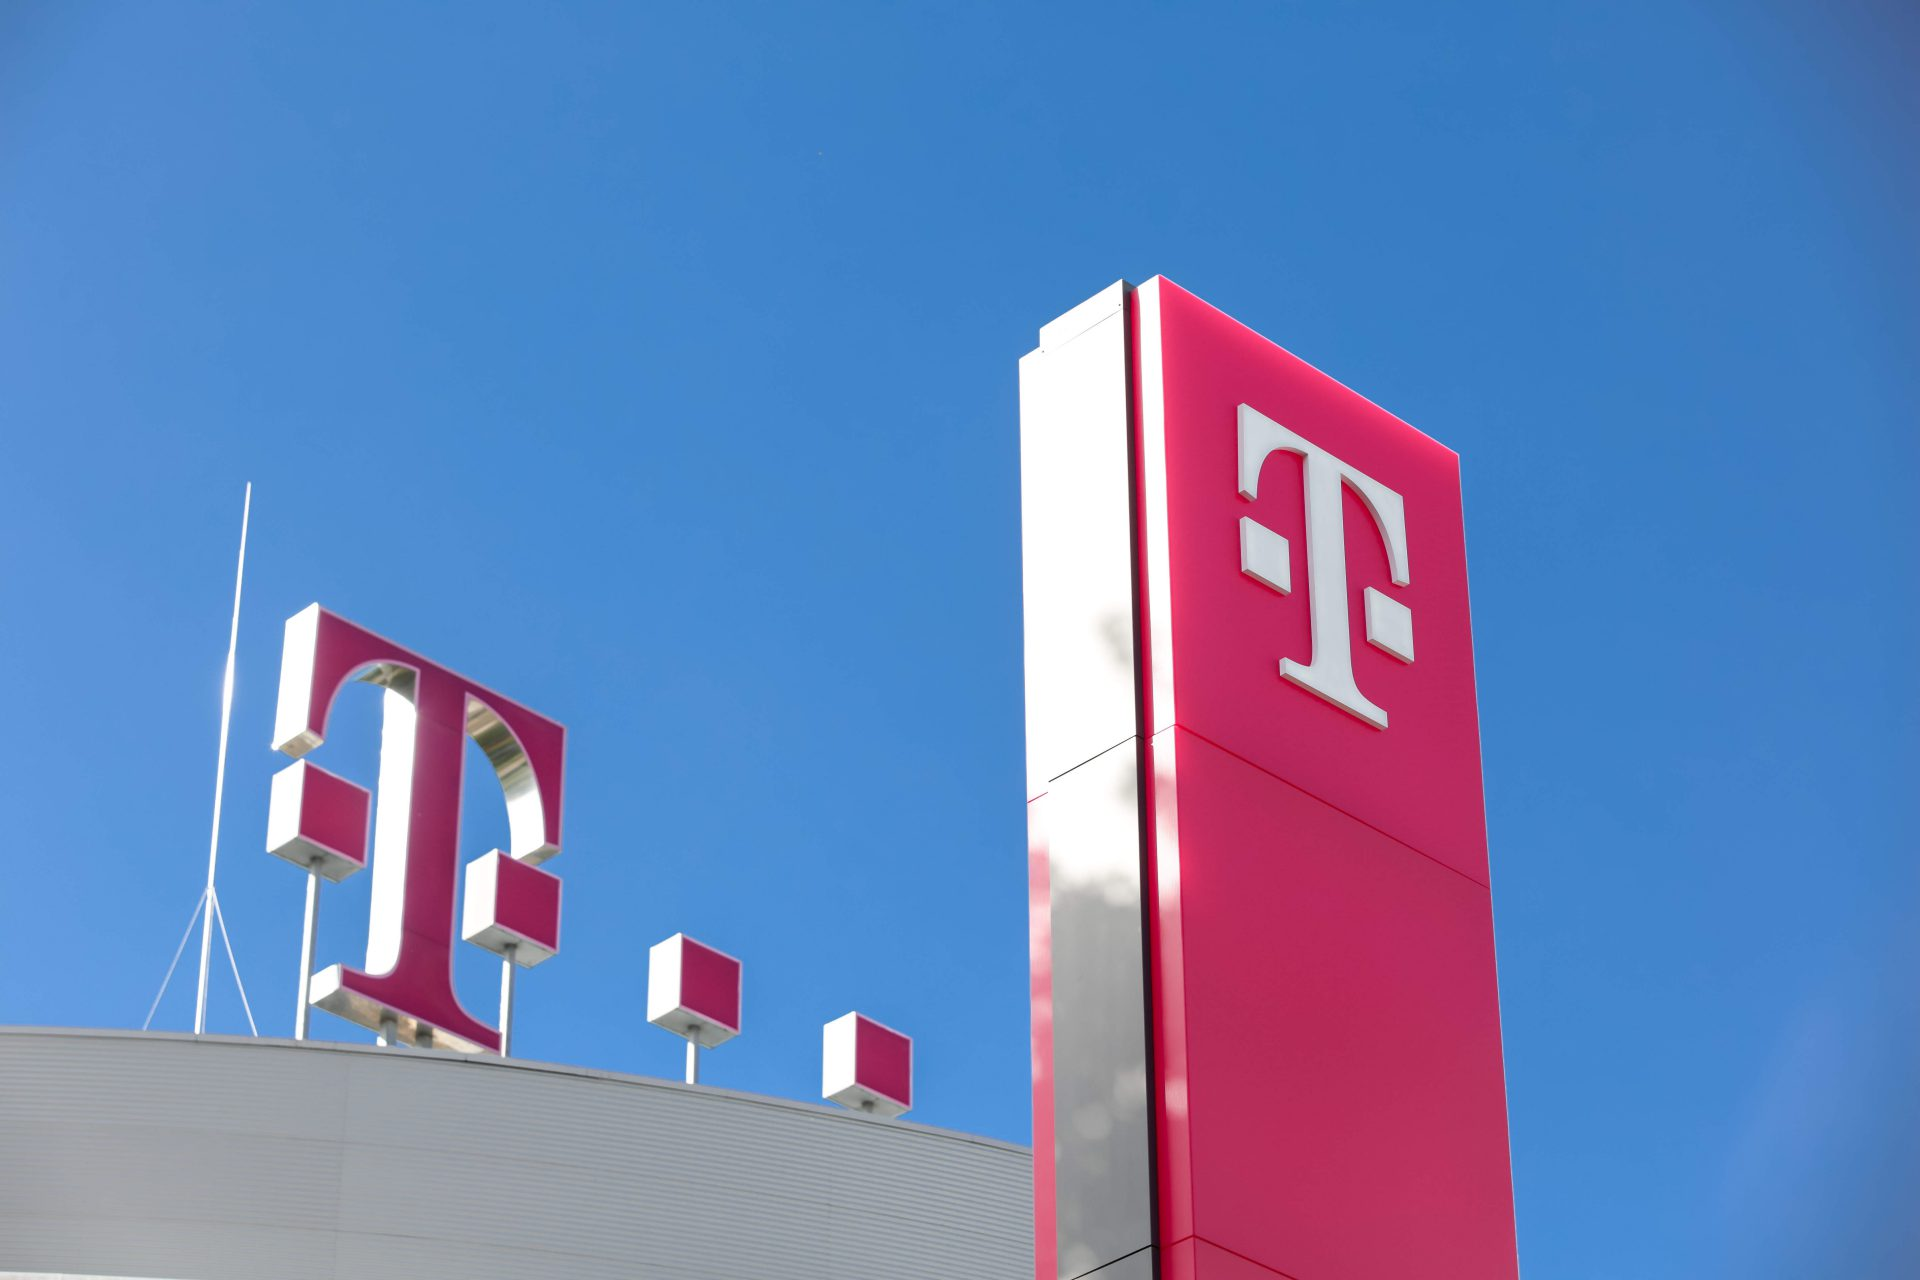 Illustration : Le piratage de Deutsche Telekom, parfait exemple de la menace des cyberattaques